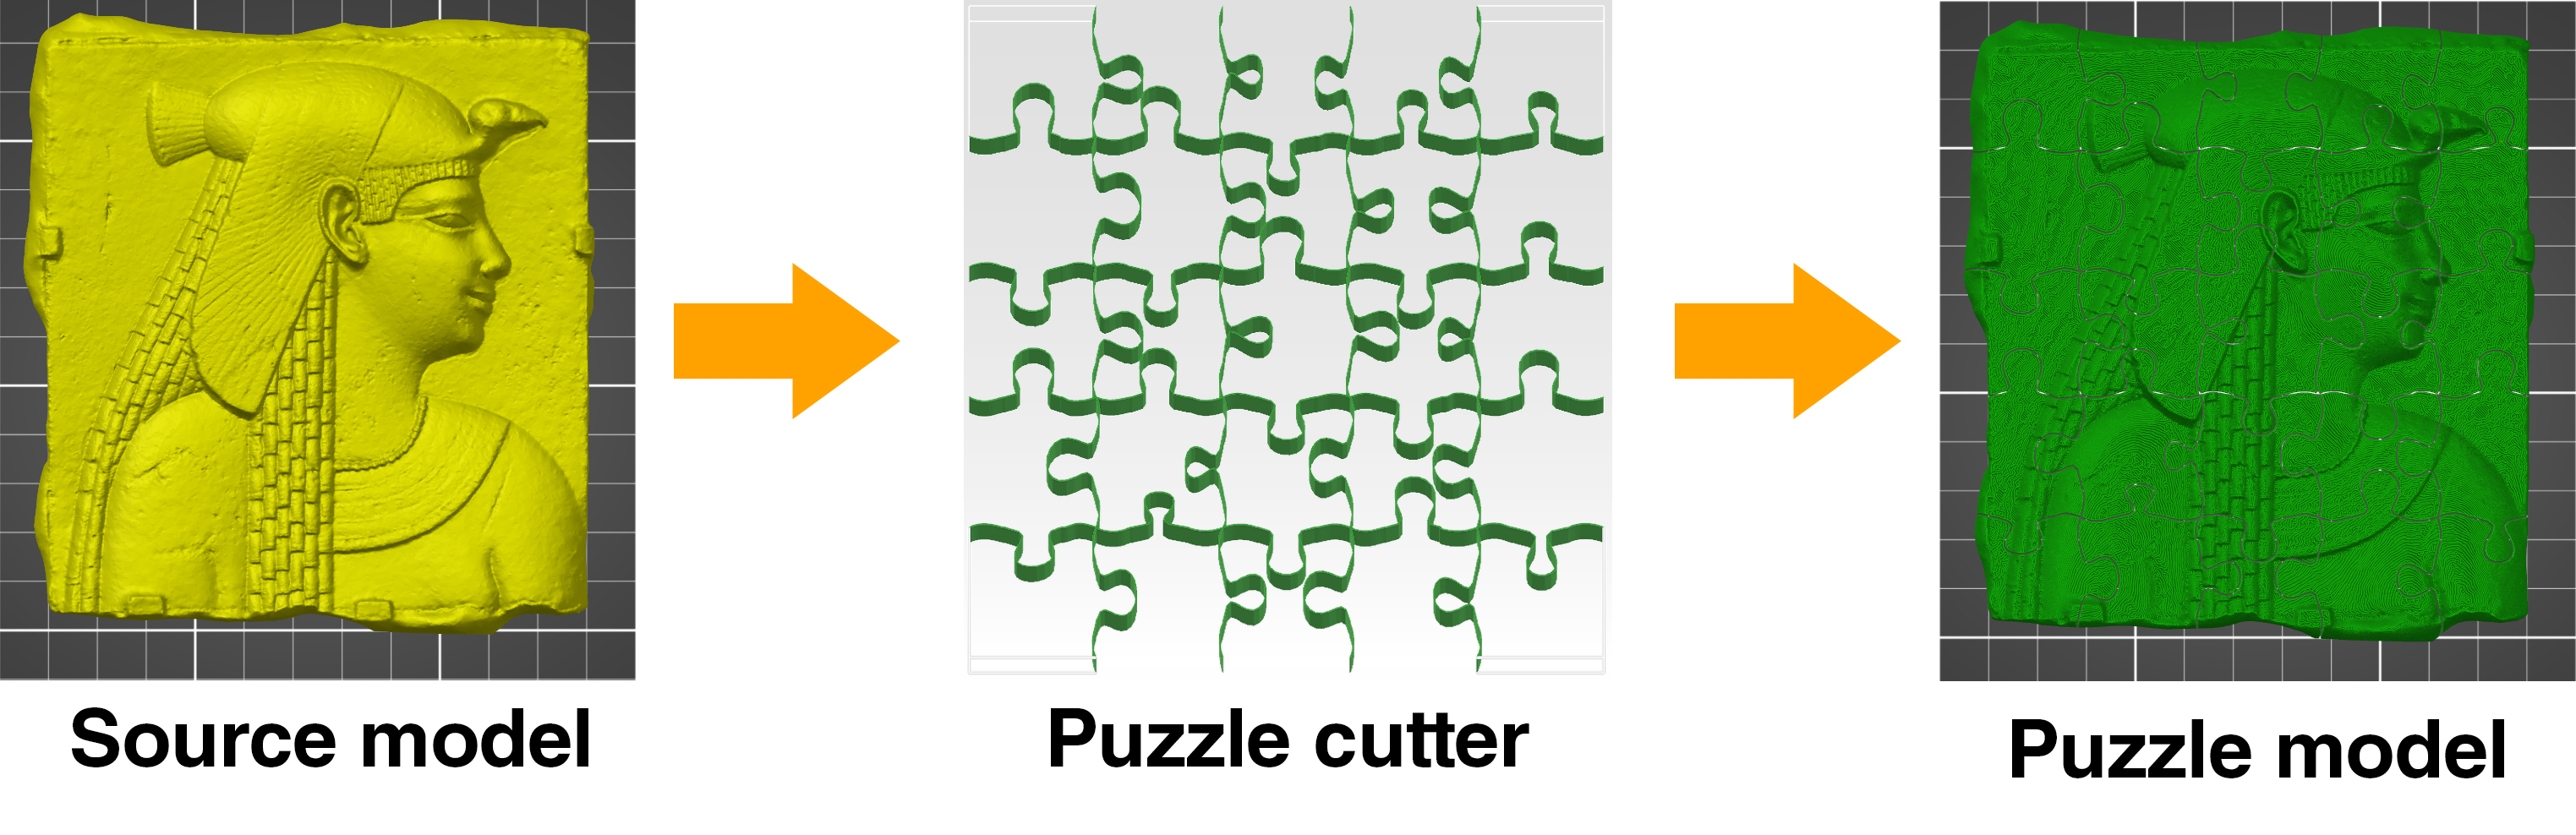 Create And Print Your Own 3D Jigsaw Puzzles! - Prusa Printers - Print Your Puzzle